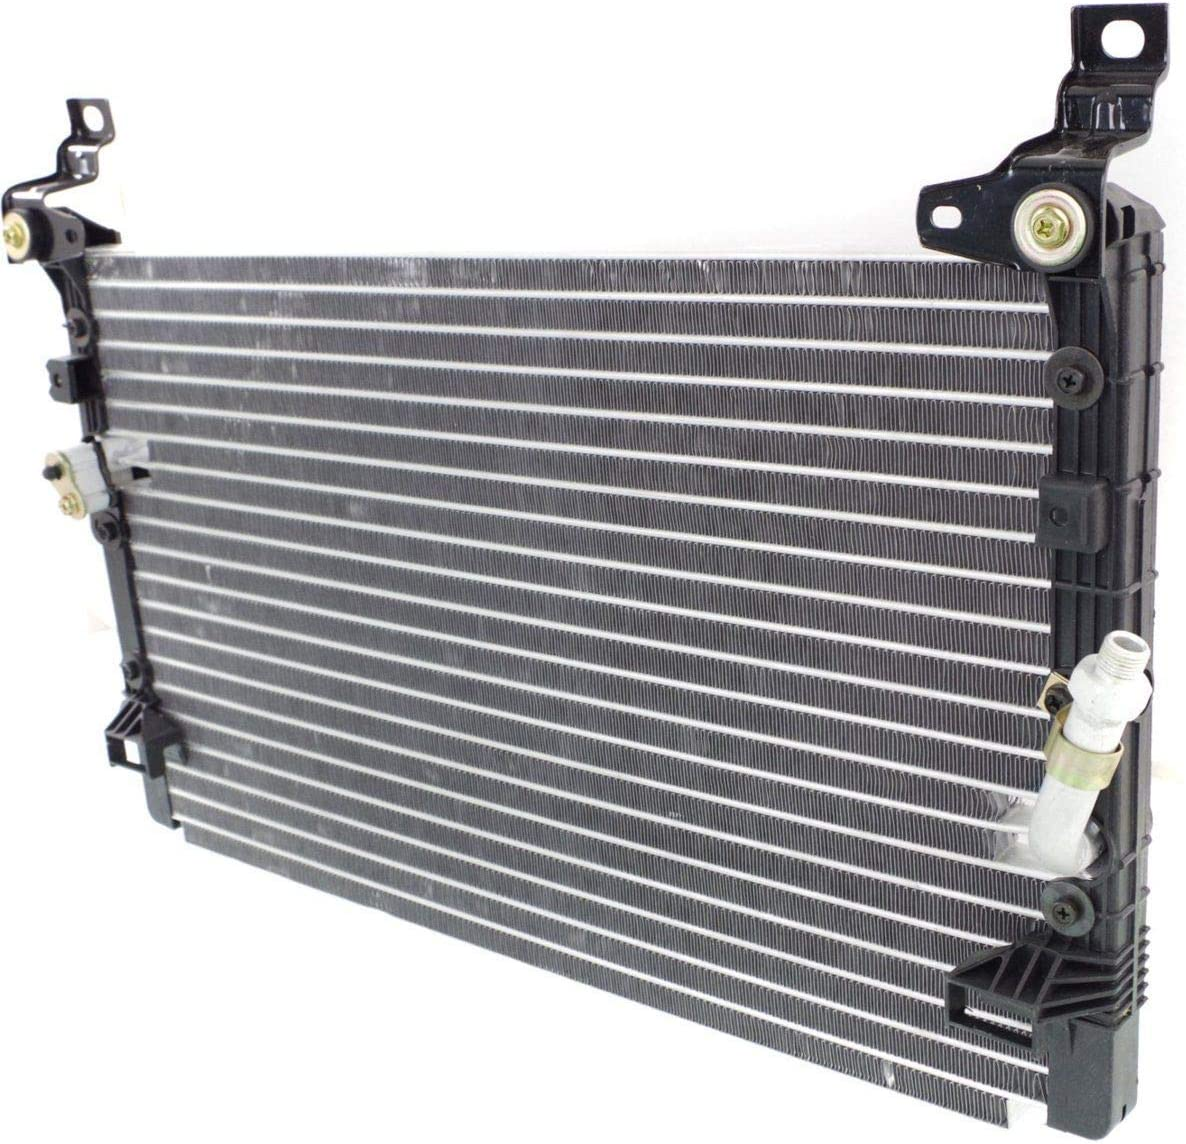 Kool Vue AC Condenser For 95-97 Toyota Tacoma